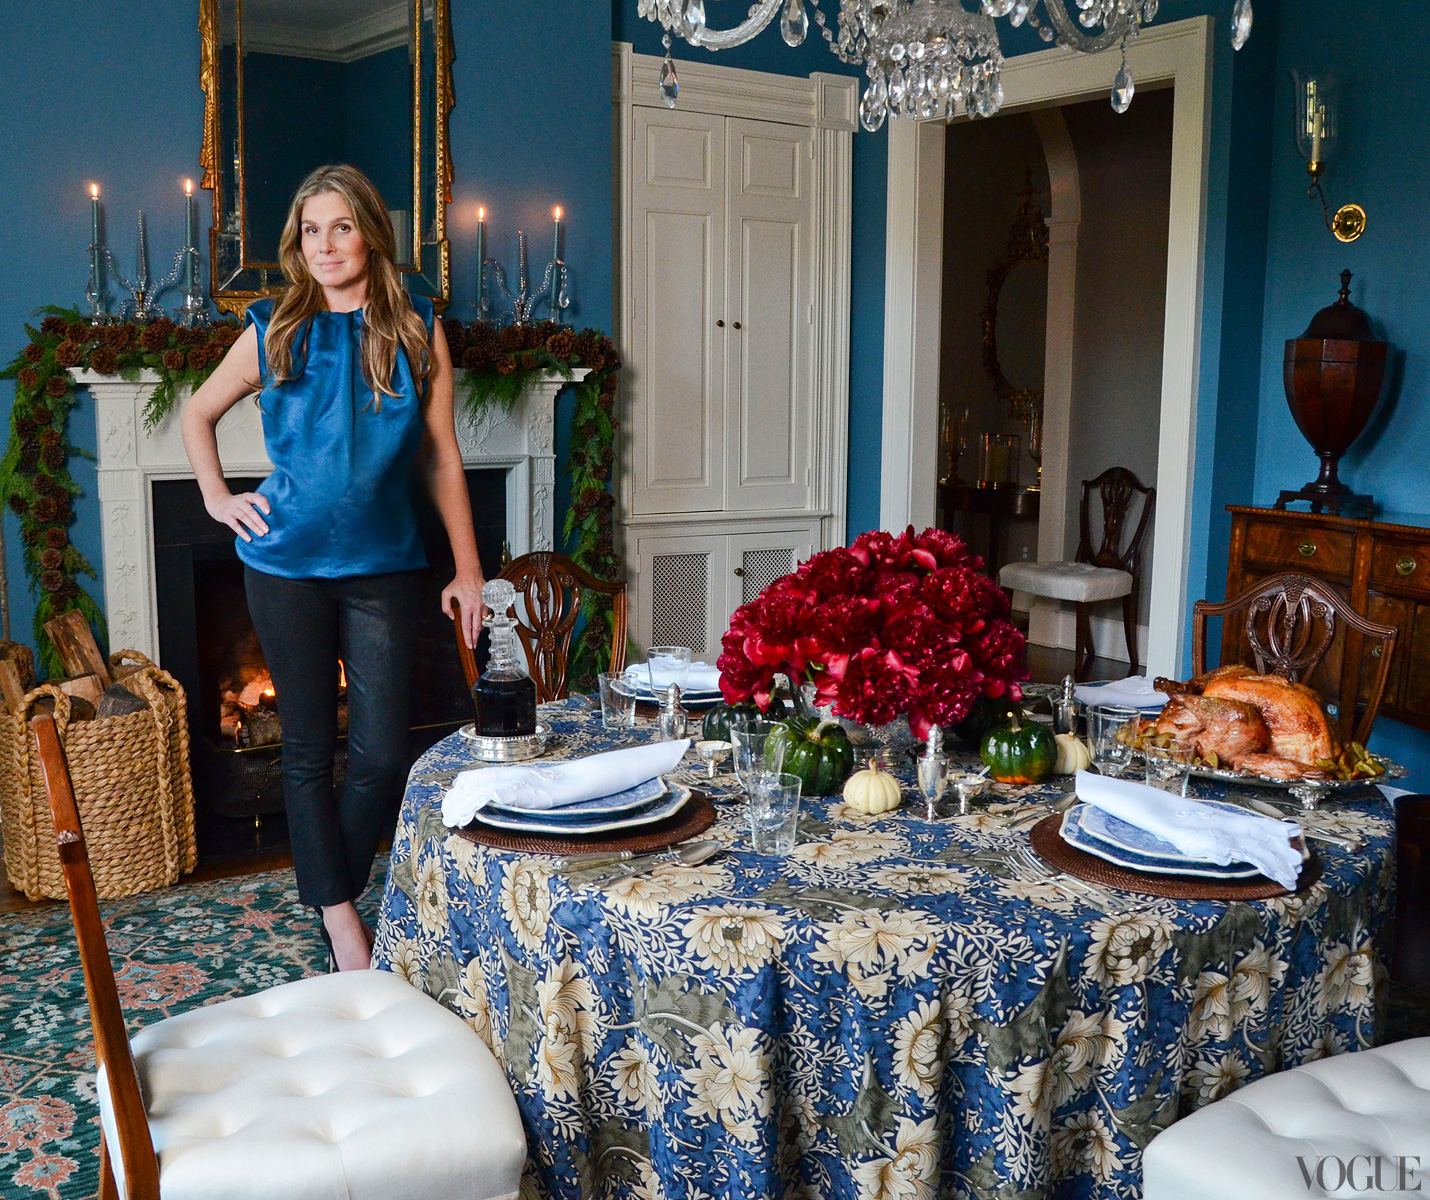 Aerin Lauder East Hampton Home Dining Room Blue Walls Christmas Decoration Round Skirted Dining Table William Morris Fabric Fireplace